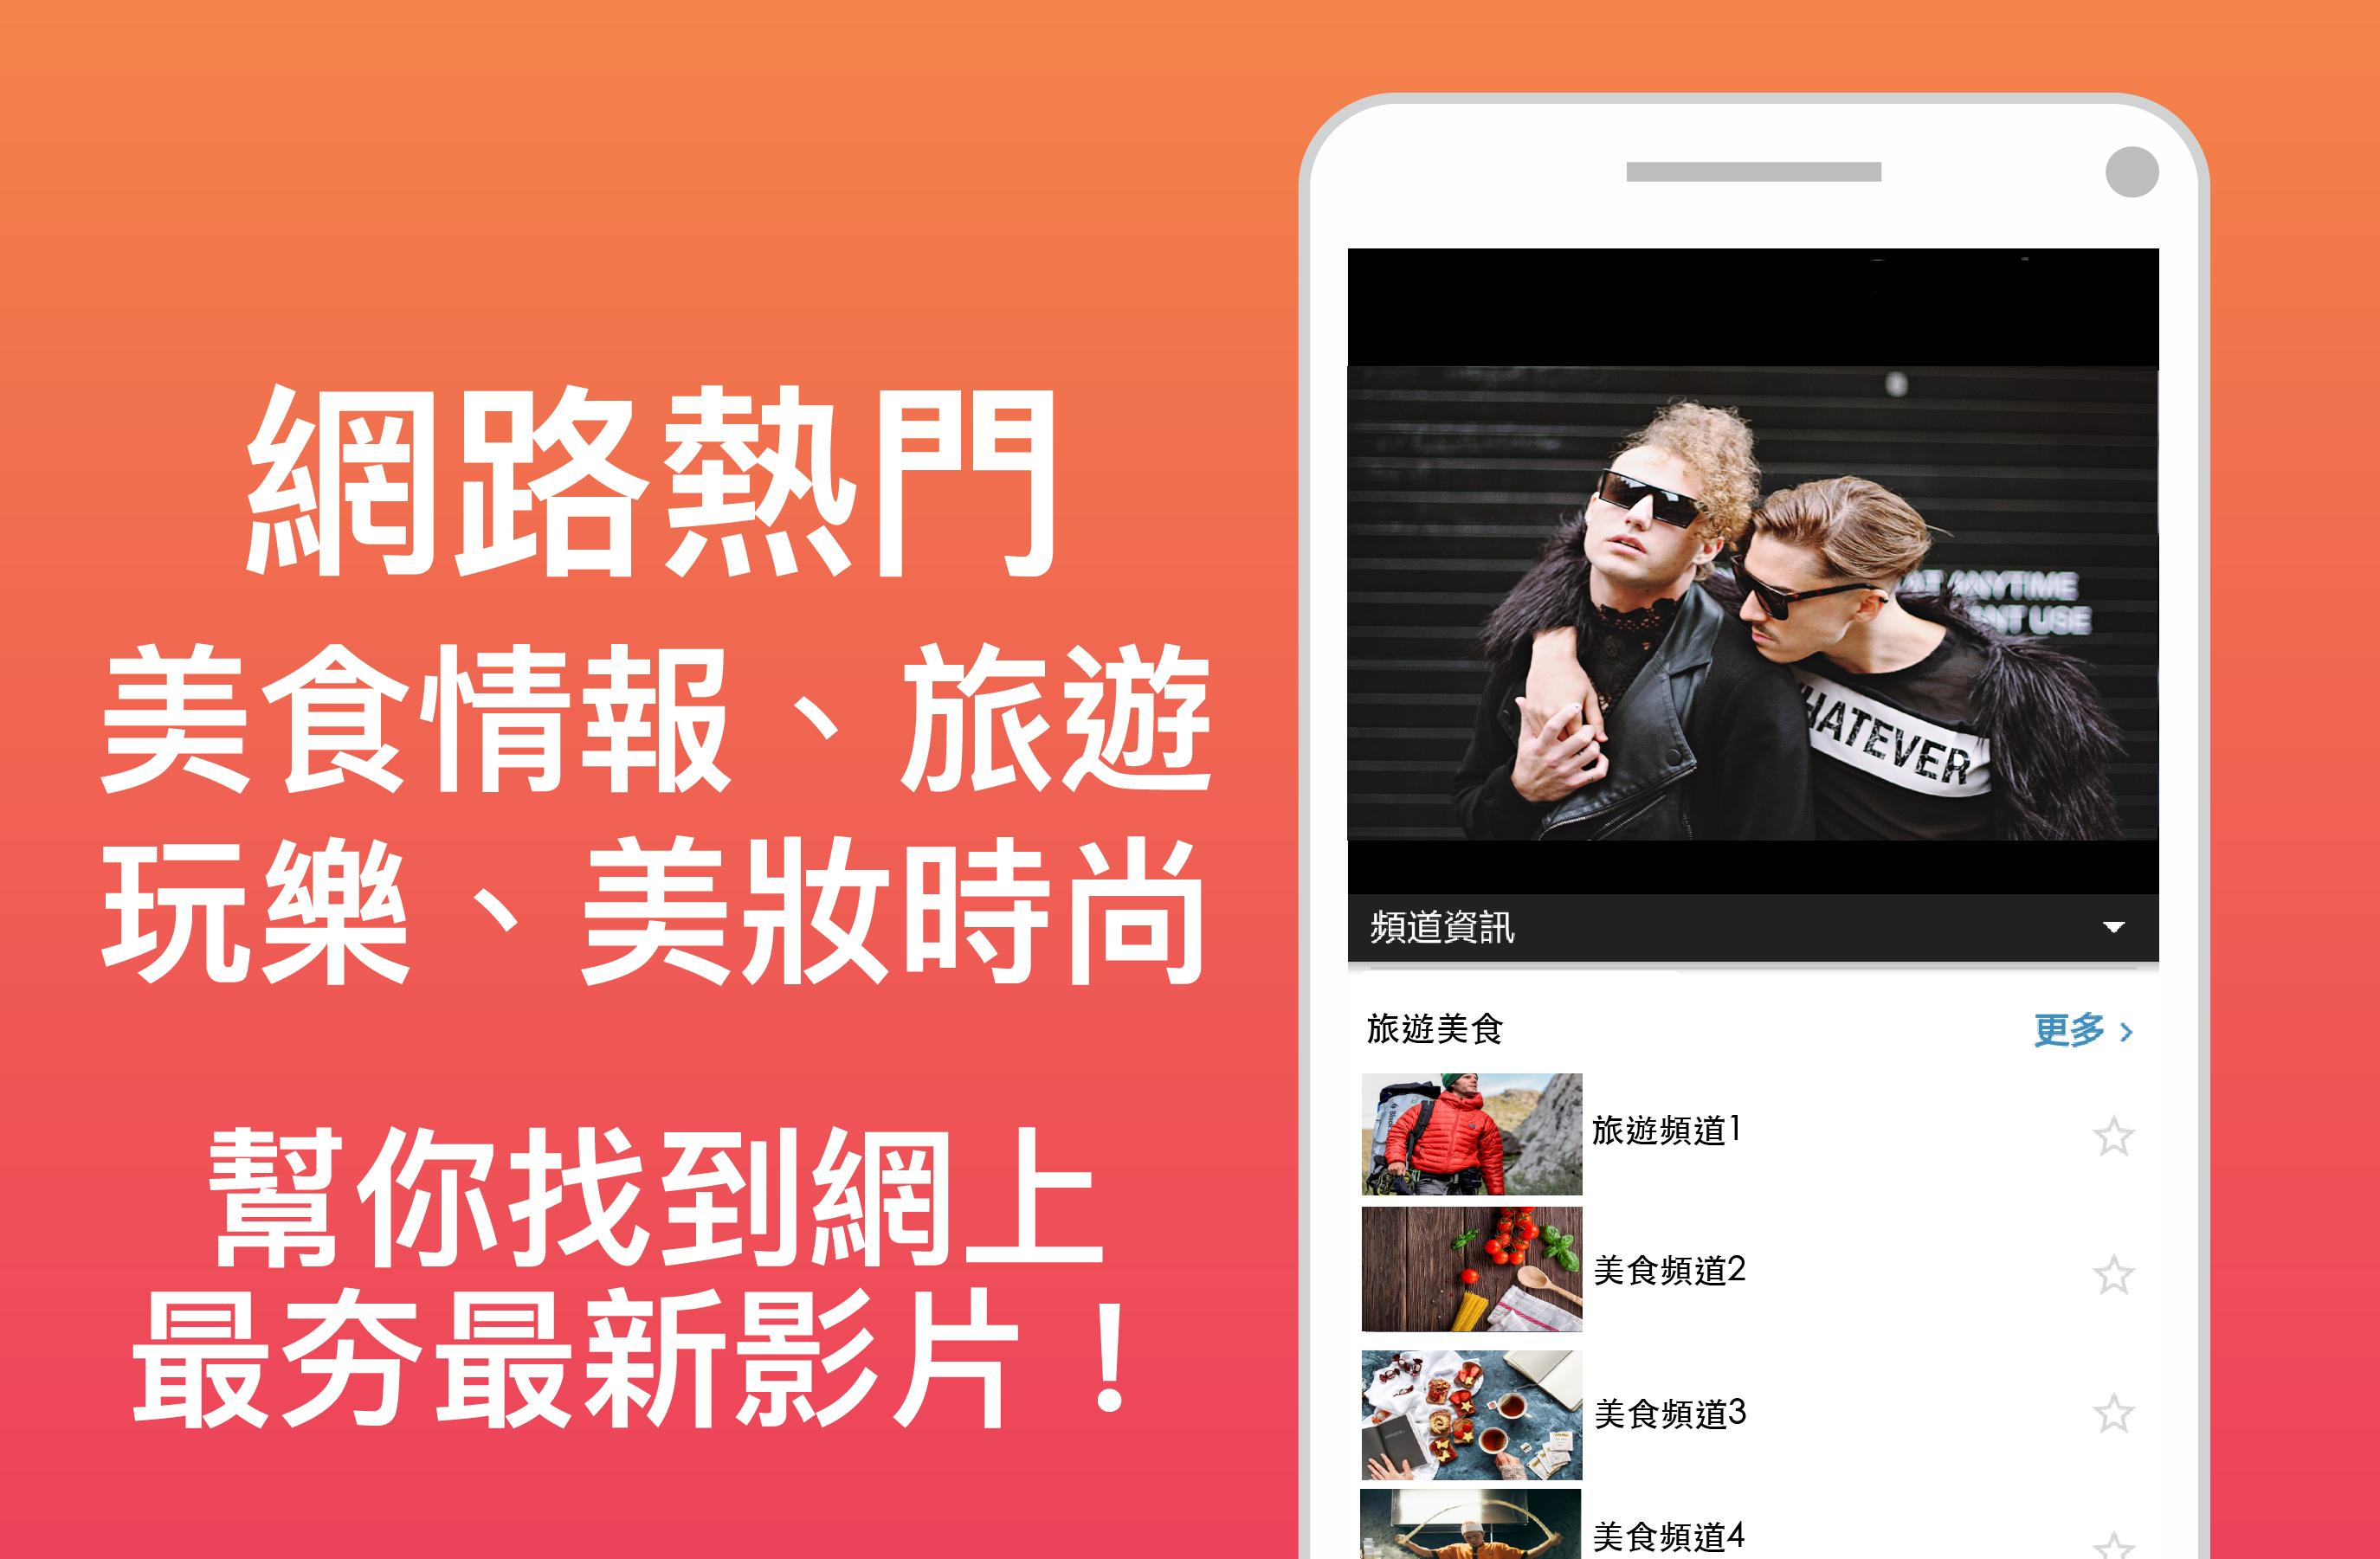 TAIWAN ONLY) Free TV Show App for Android - APK Download